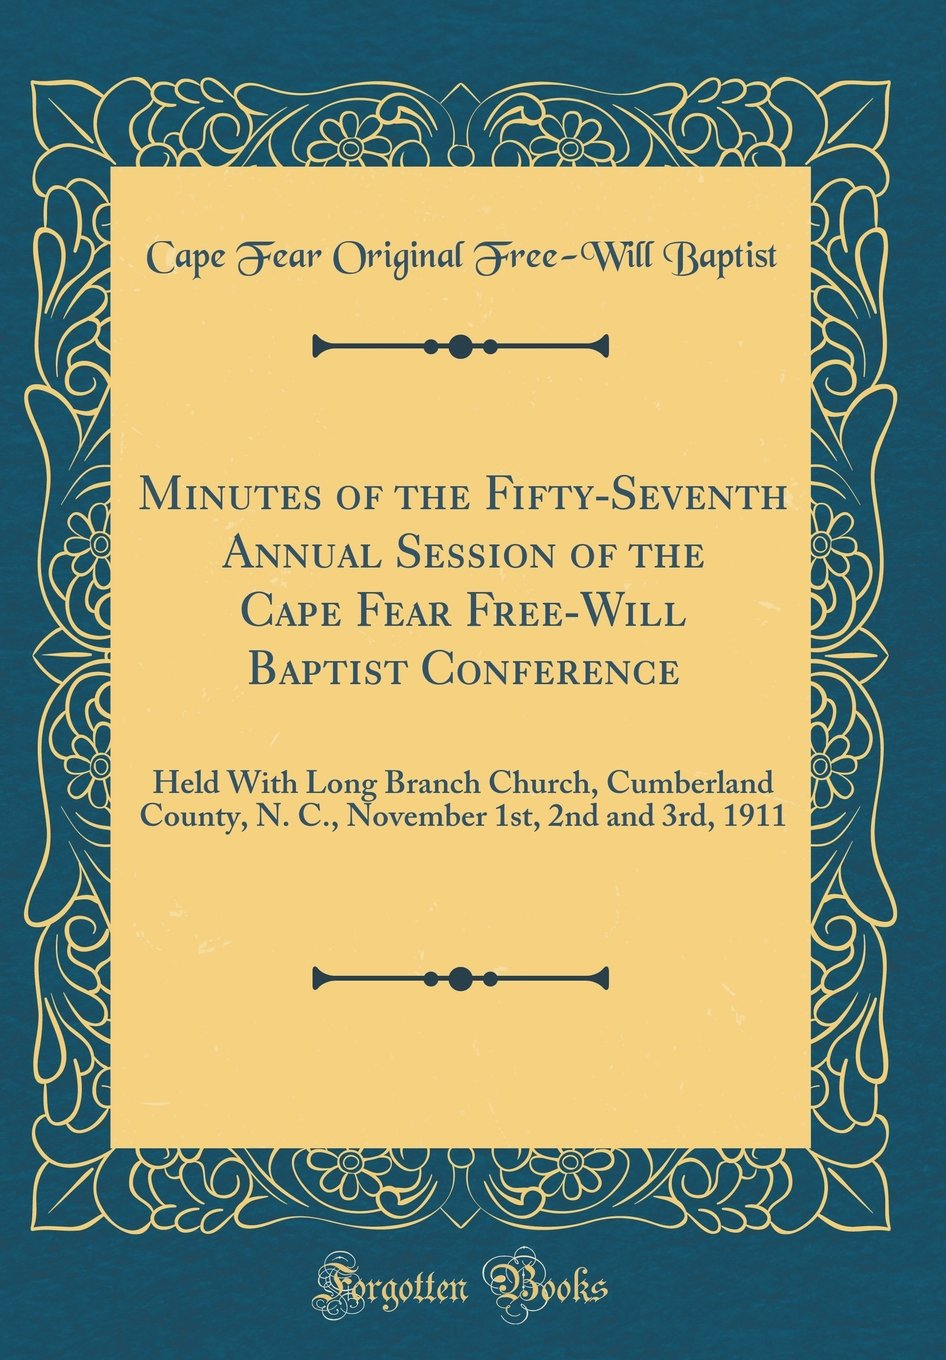 Download Minutes of the Fifty-Seventh Annual Session of the Cape Fear Free-Will Baptist Conference: Held with Long Branch Church, Cumberland County, N. C., November 1st, 2nd and 3rd, 1911 (Classic Reprint) pdf epub